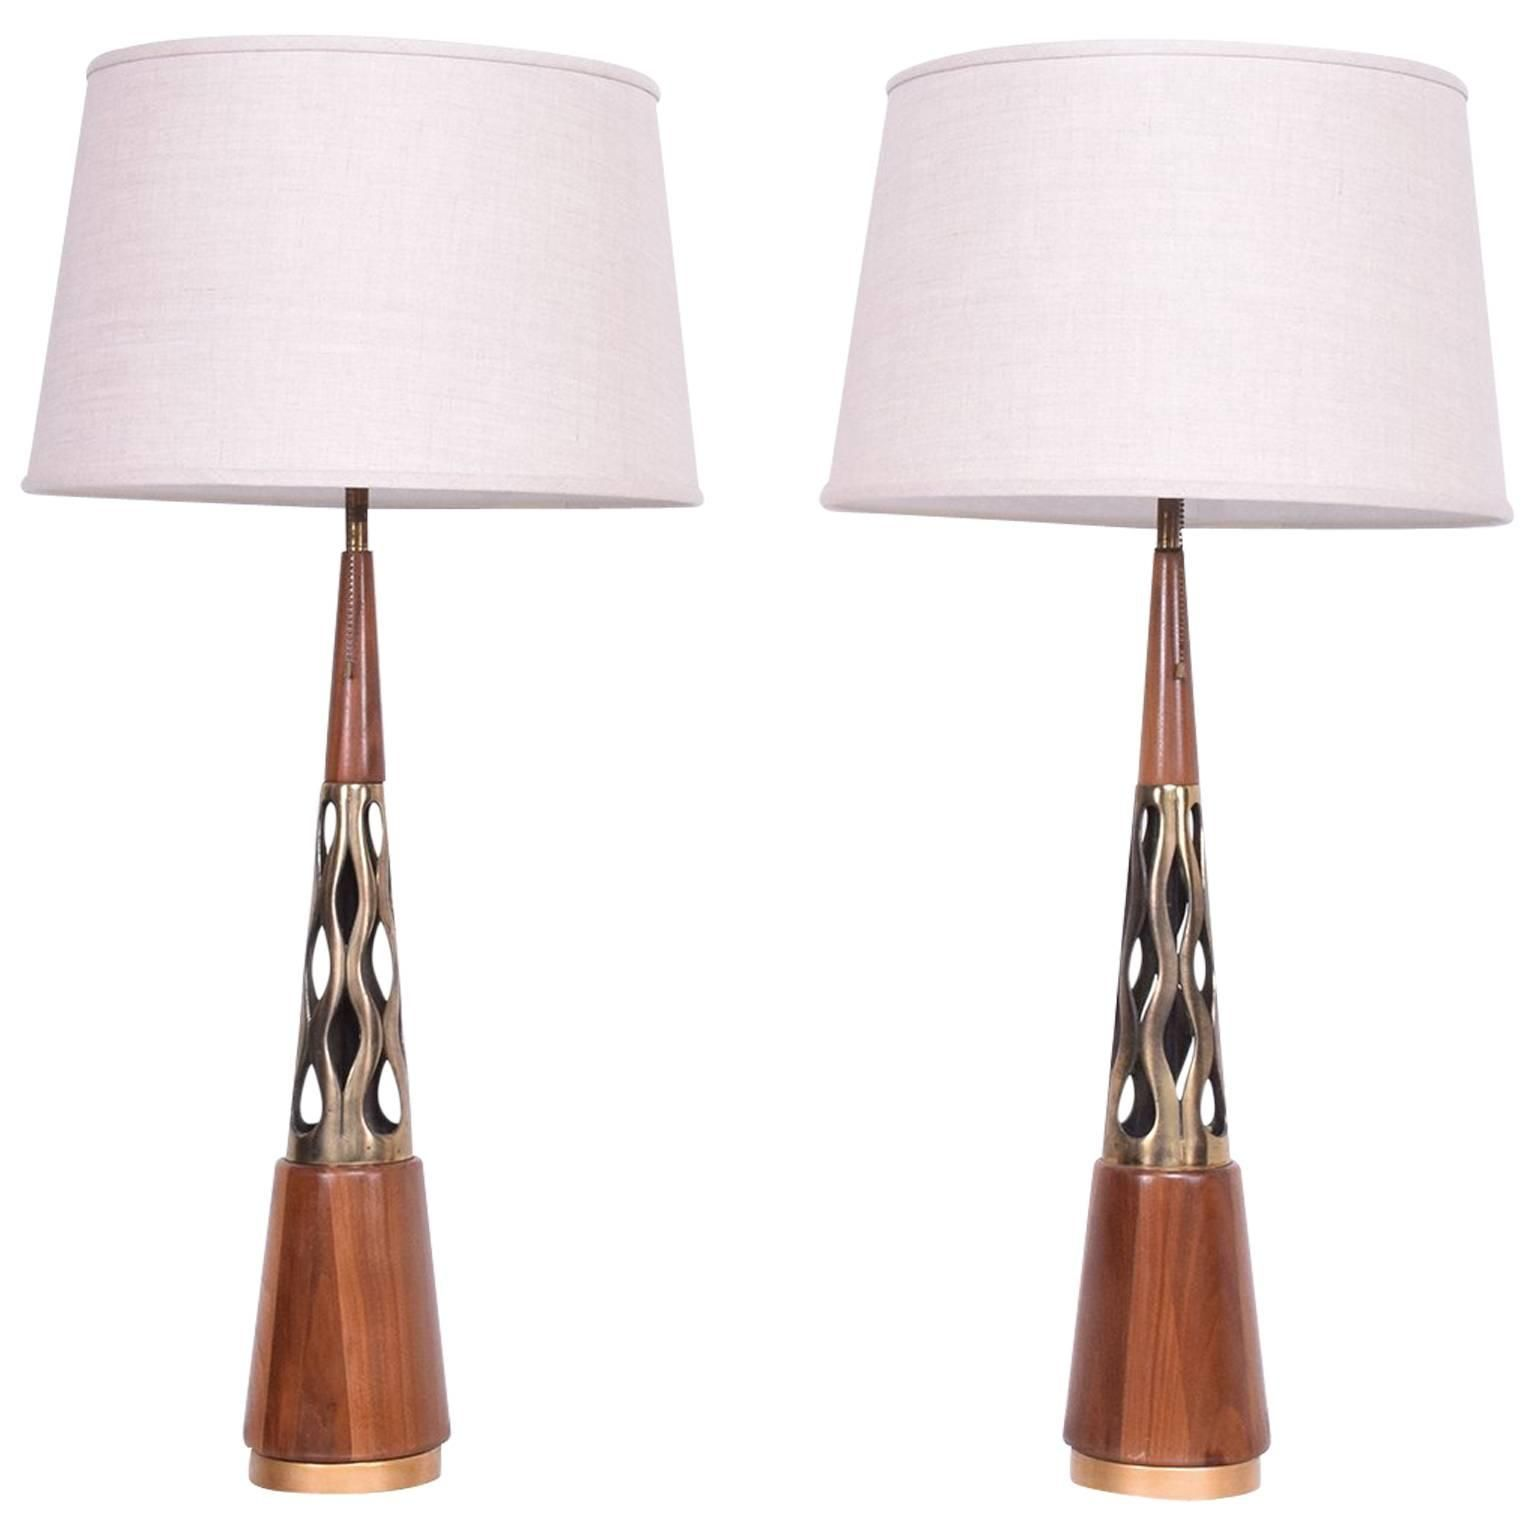 Mid Century Modern Walnut And Brass Table Lamps For Sale The Kairos Collective Uk